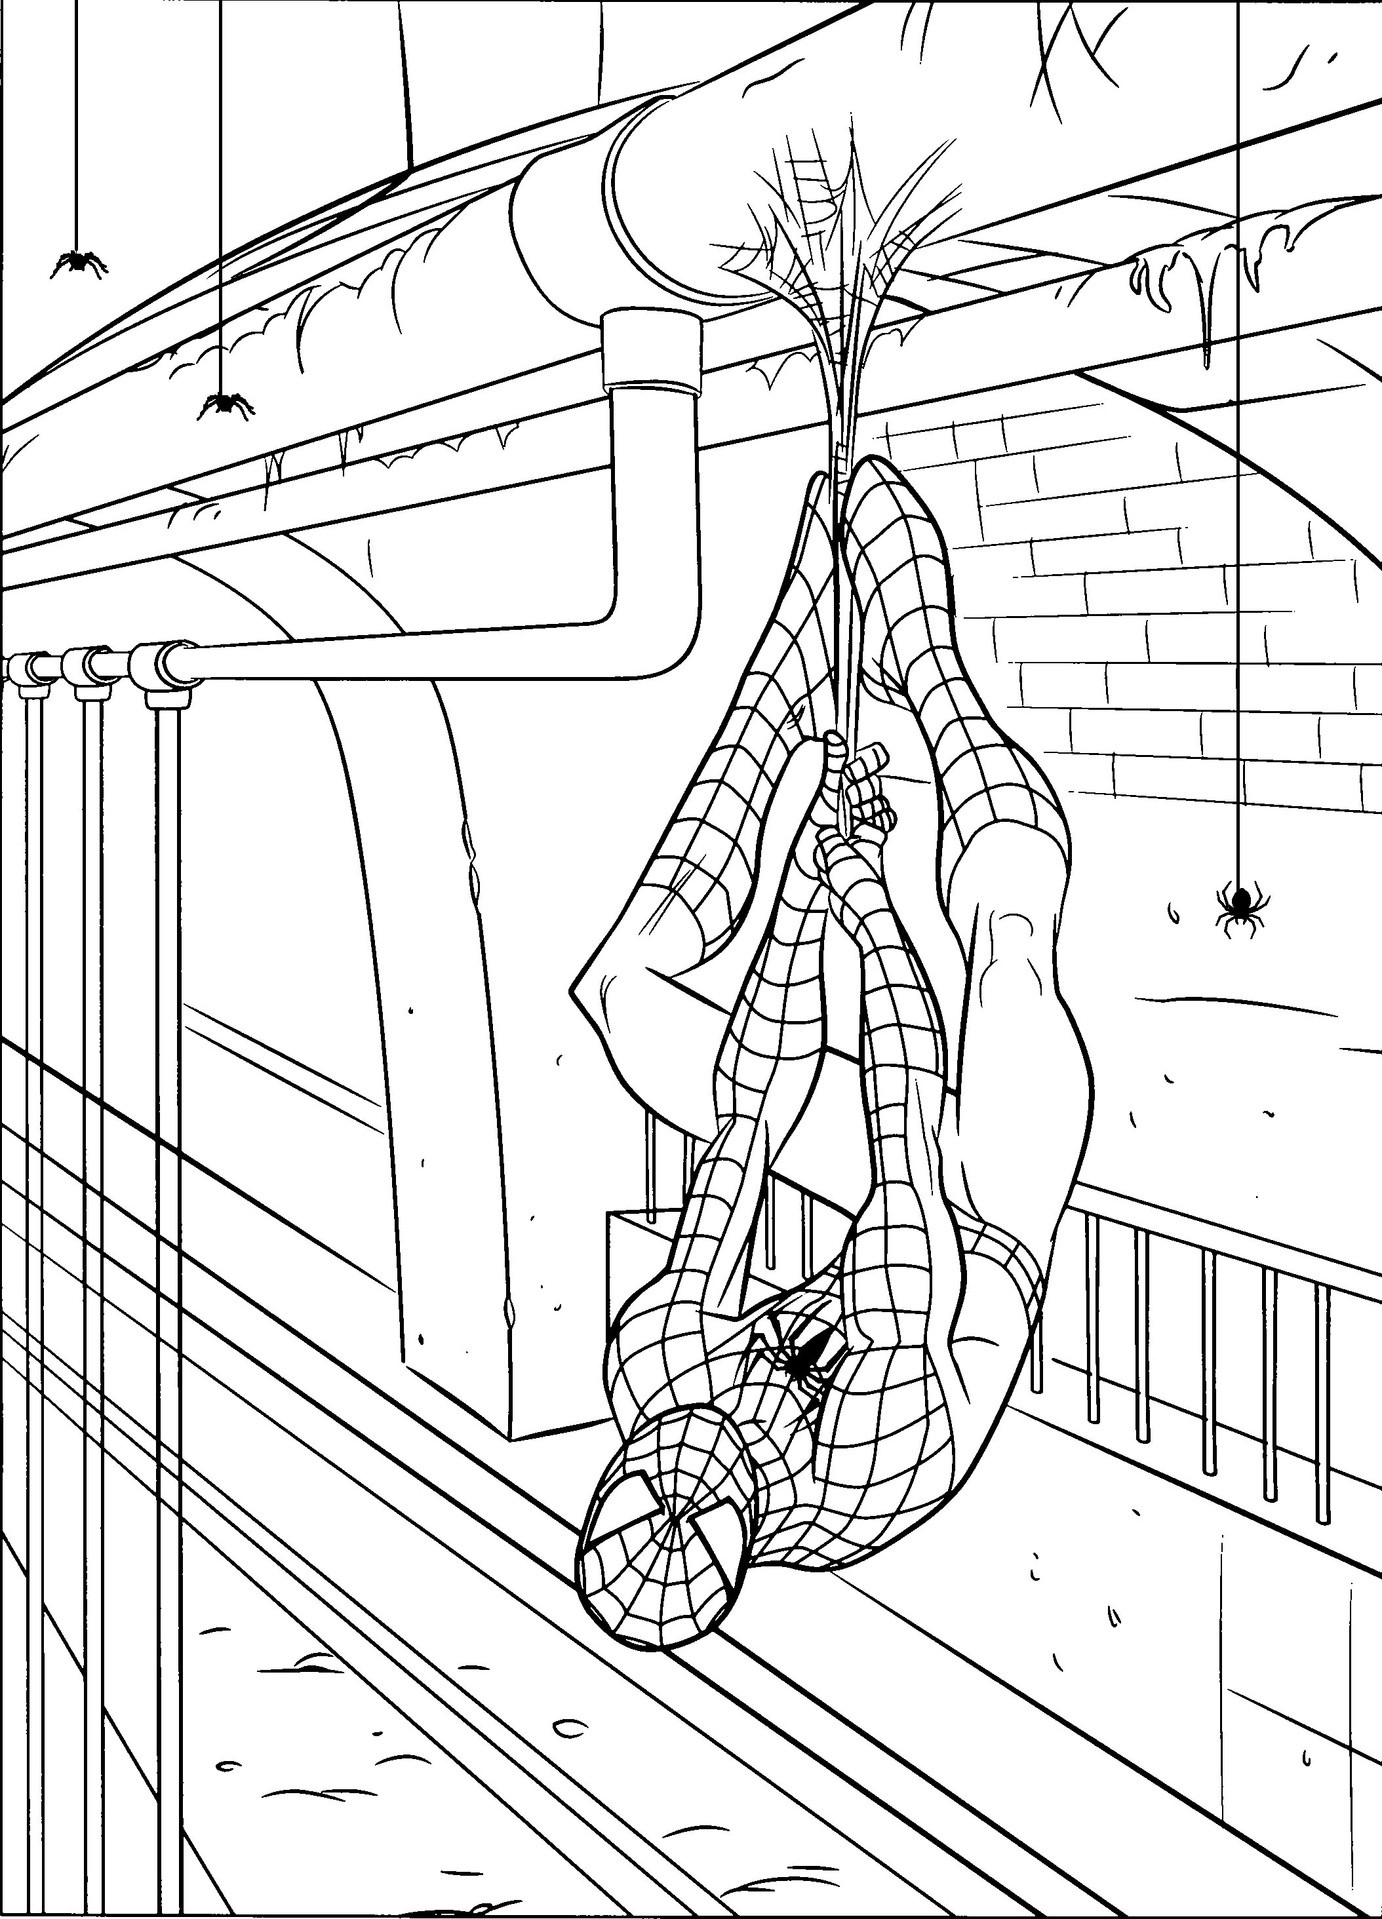 Best ideas about Free Printable Coloring Sheets Of Spiderman . Save or Pin Free Printable Spiderman Coloring Pages For Kids Now.